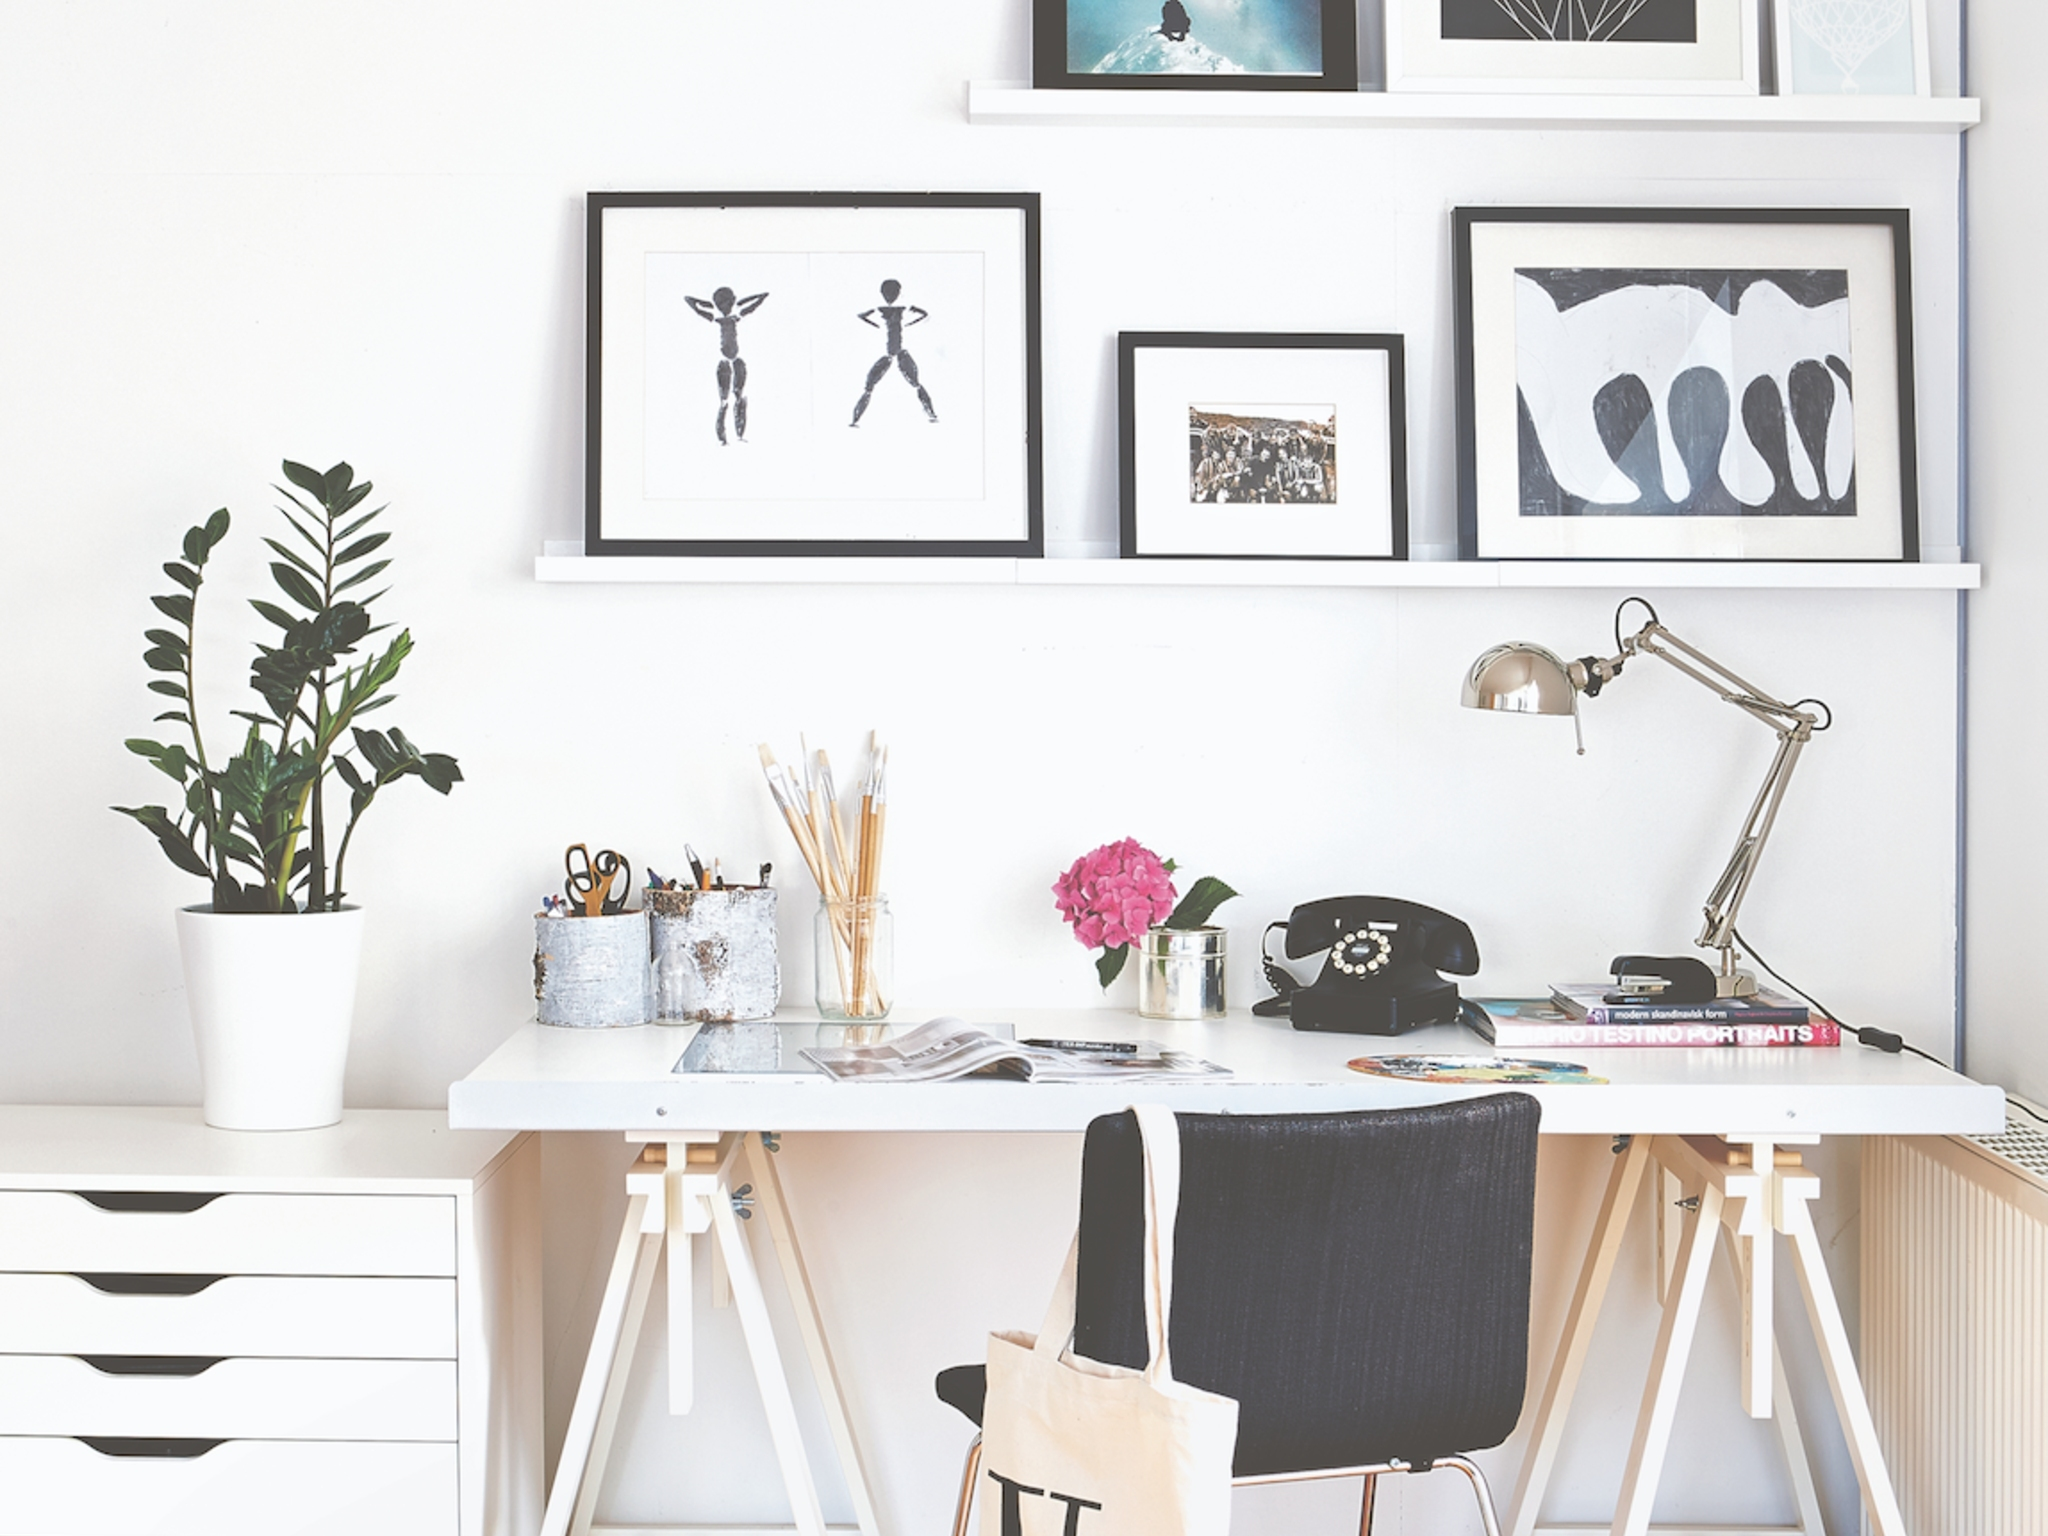 7 ways to make your home office an actually nice place to be in 2021